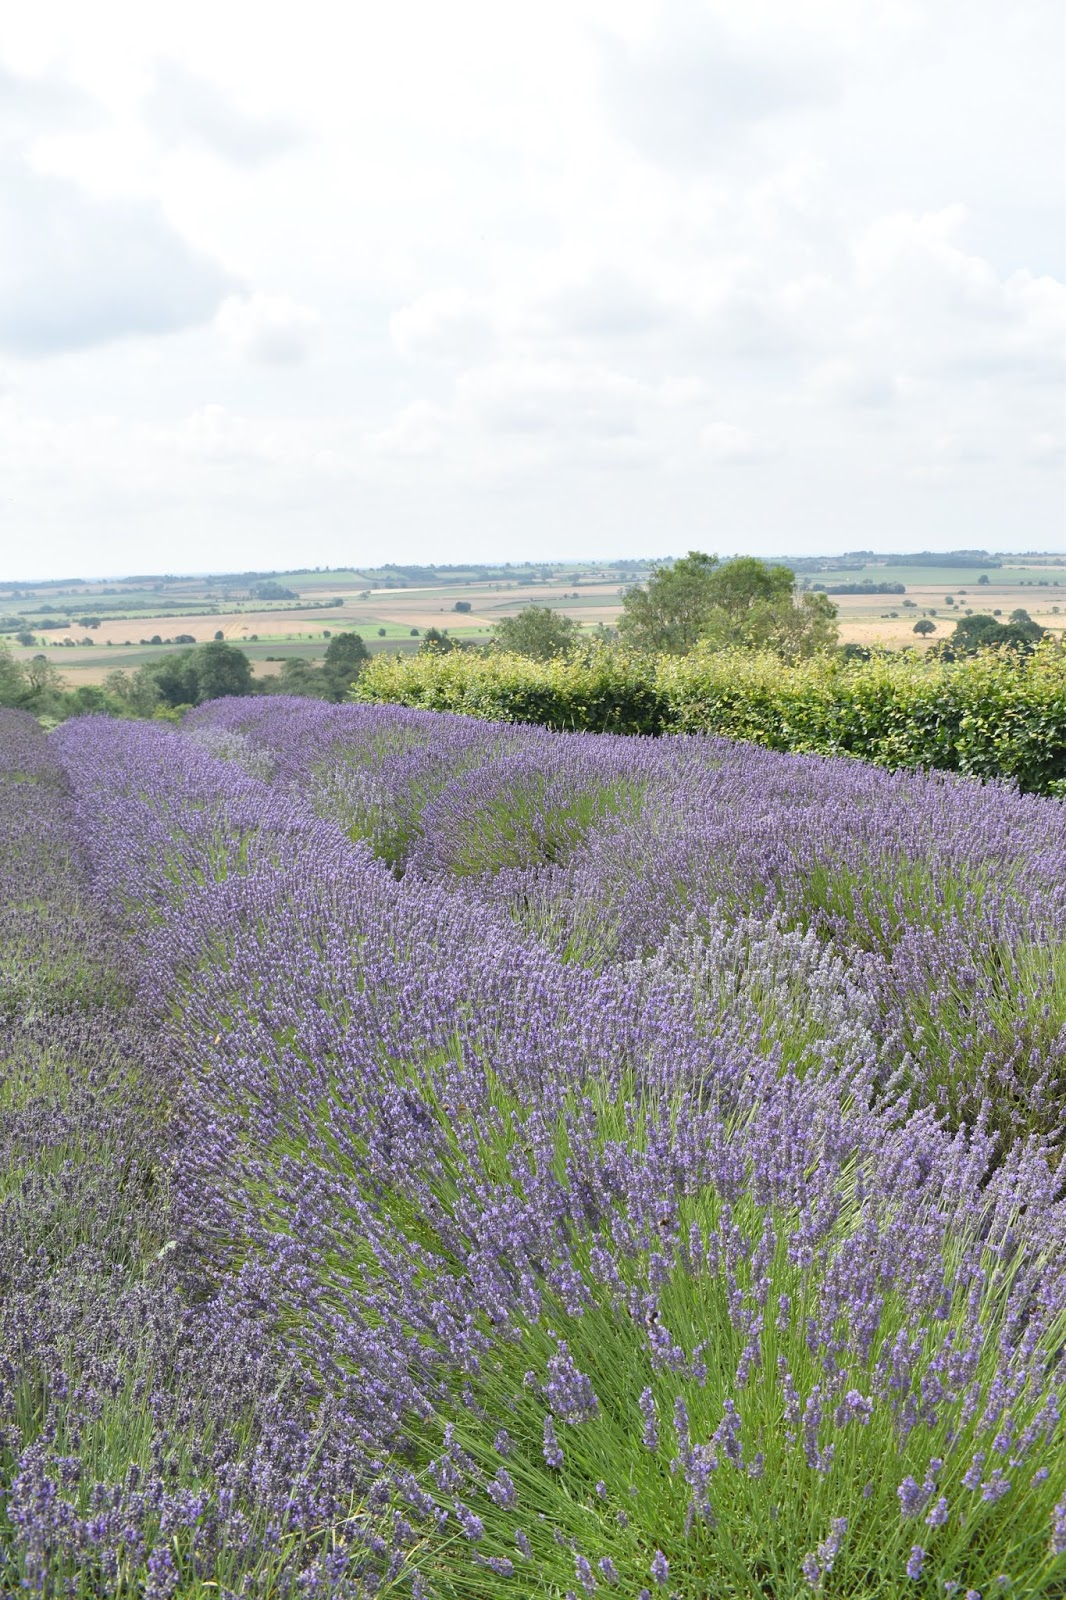 Where to Find Lavender Fields - A Trip to Yorkshire Lavender